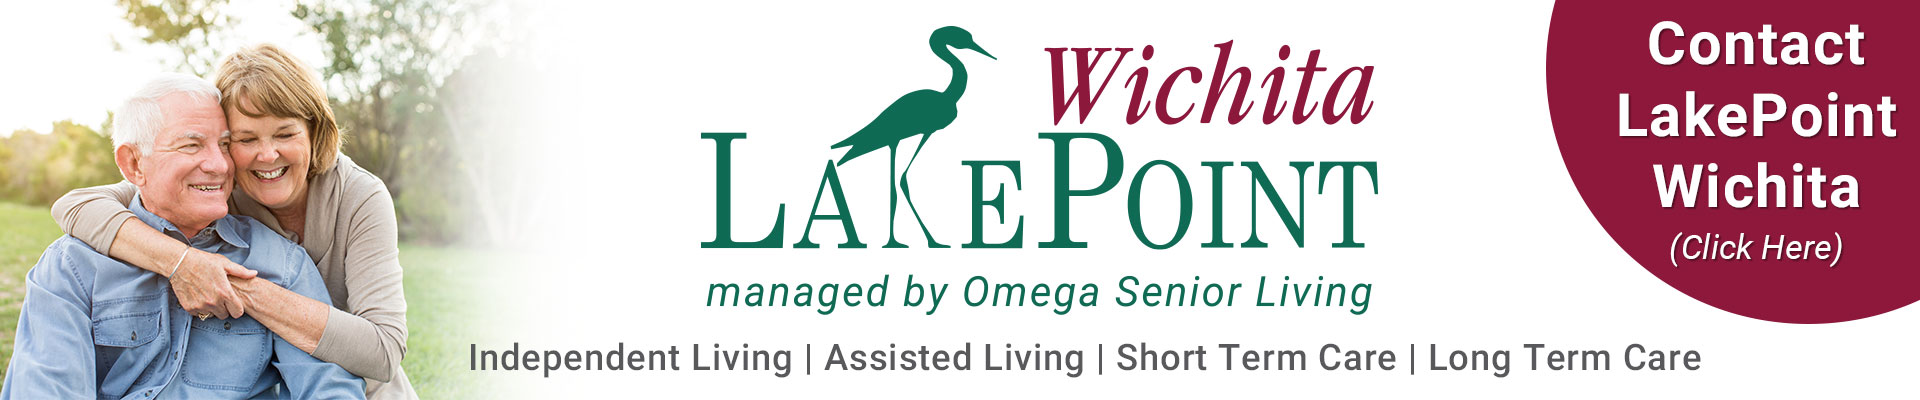 Contact LakePoint Wichita for Long Term Care, Assisted Living, Short Term Care & Long Term Care needs.